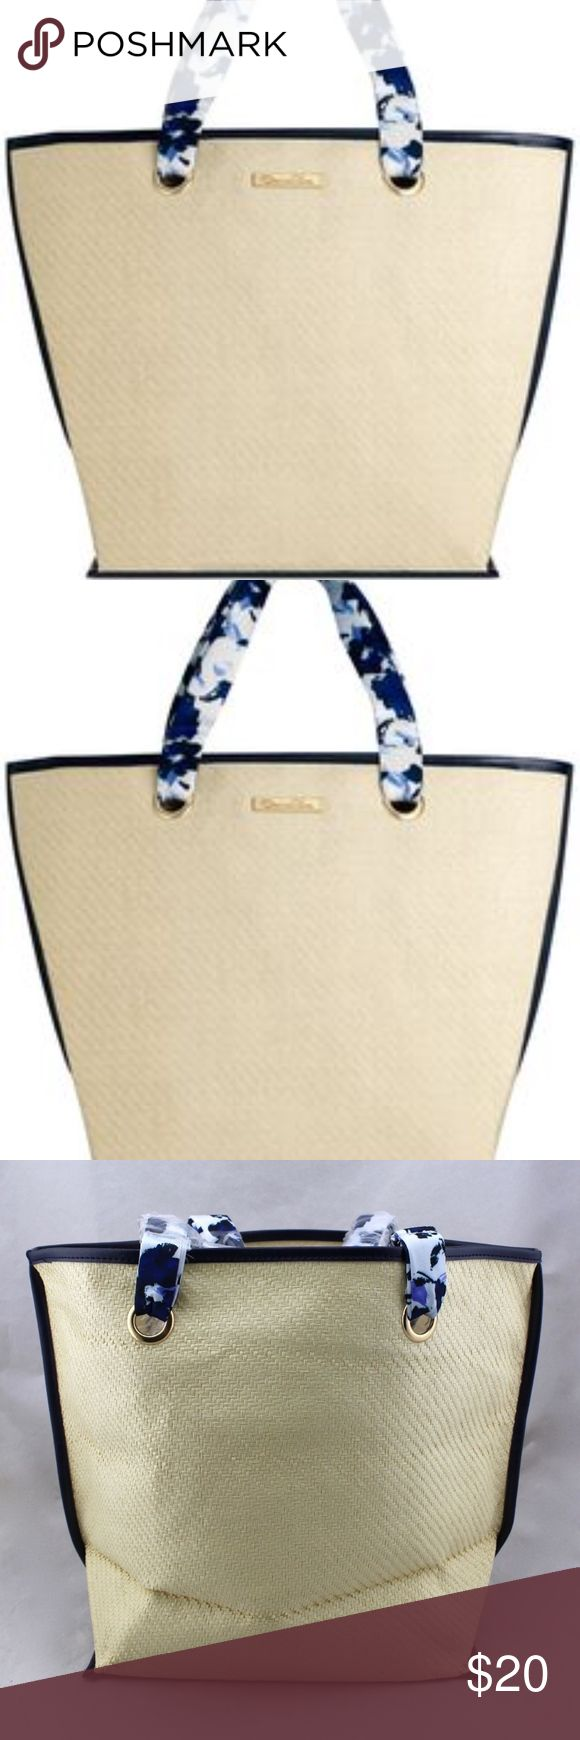 New ! Oscar De Larenta Oscar de la Renta Resort Tote Brand new paper straw bag in original packaging is perfect for the beach, shopping, or travel. Color: navy and white straps. New and never used. Oscar de la Renta Bags Totes